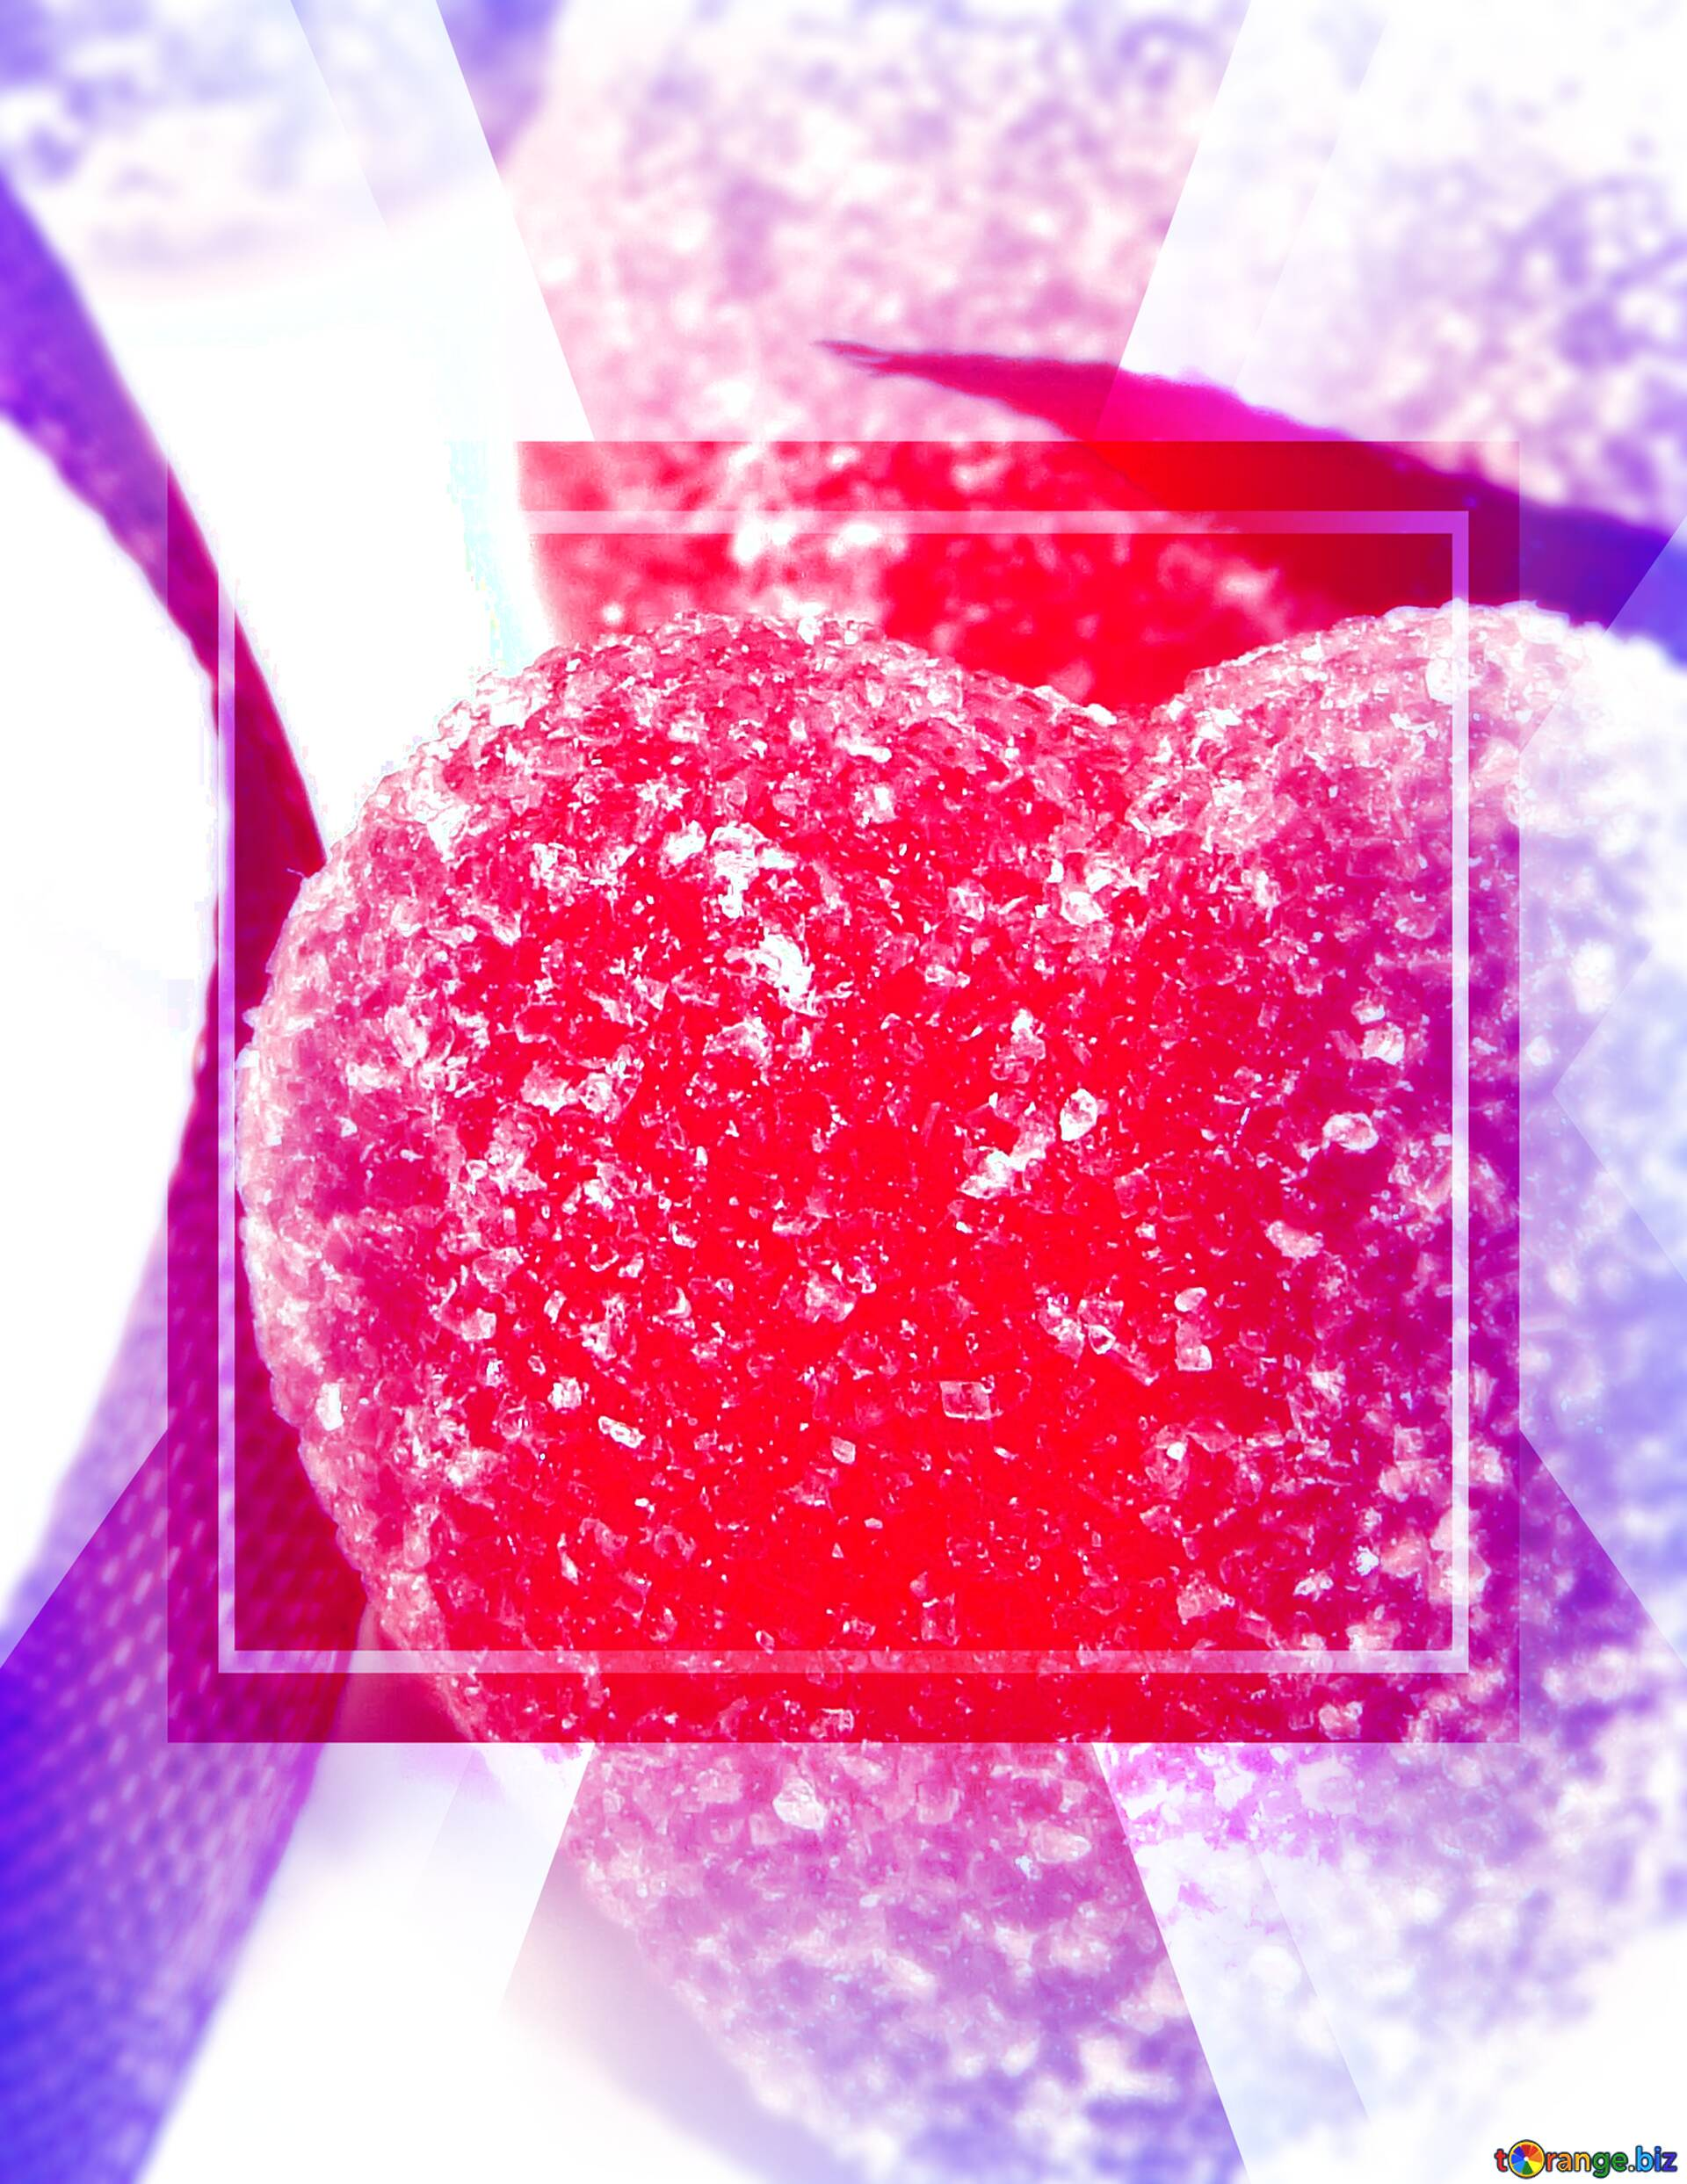 Download Free Picture Greeting Card For Valentine Beautiful Creativity Background Template Banner Design On Cc By License Free Image Stock Torange Biz Fx 190021